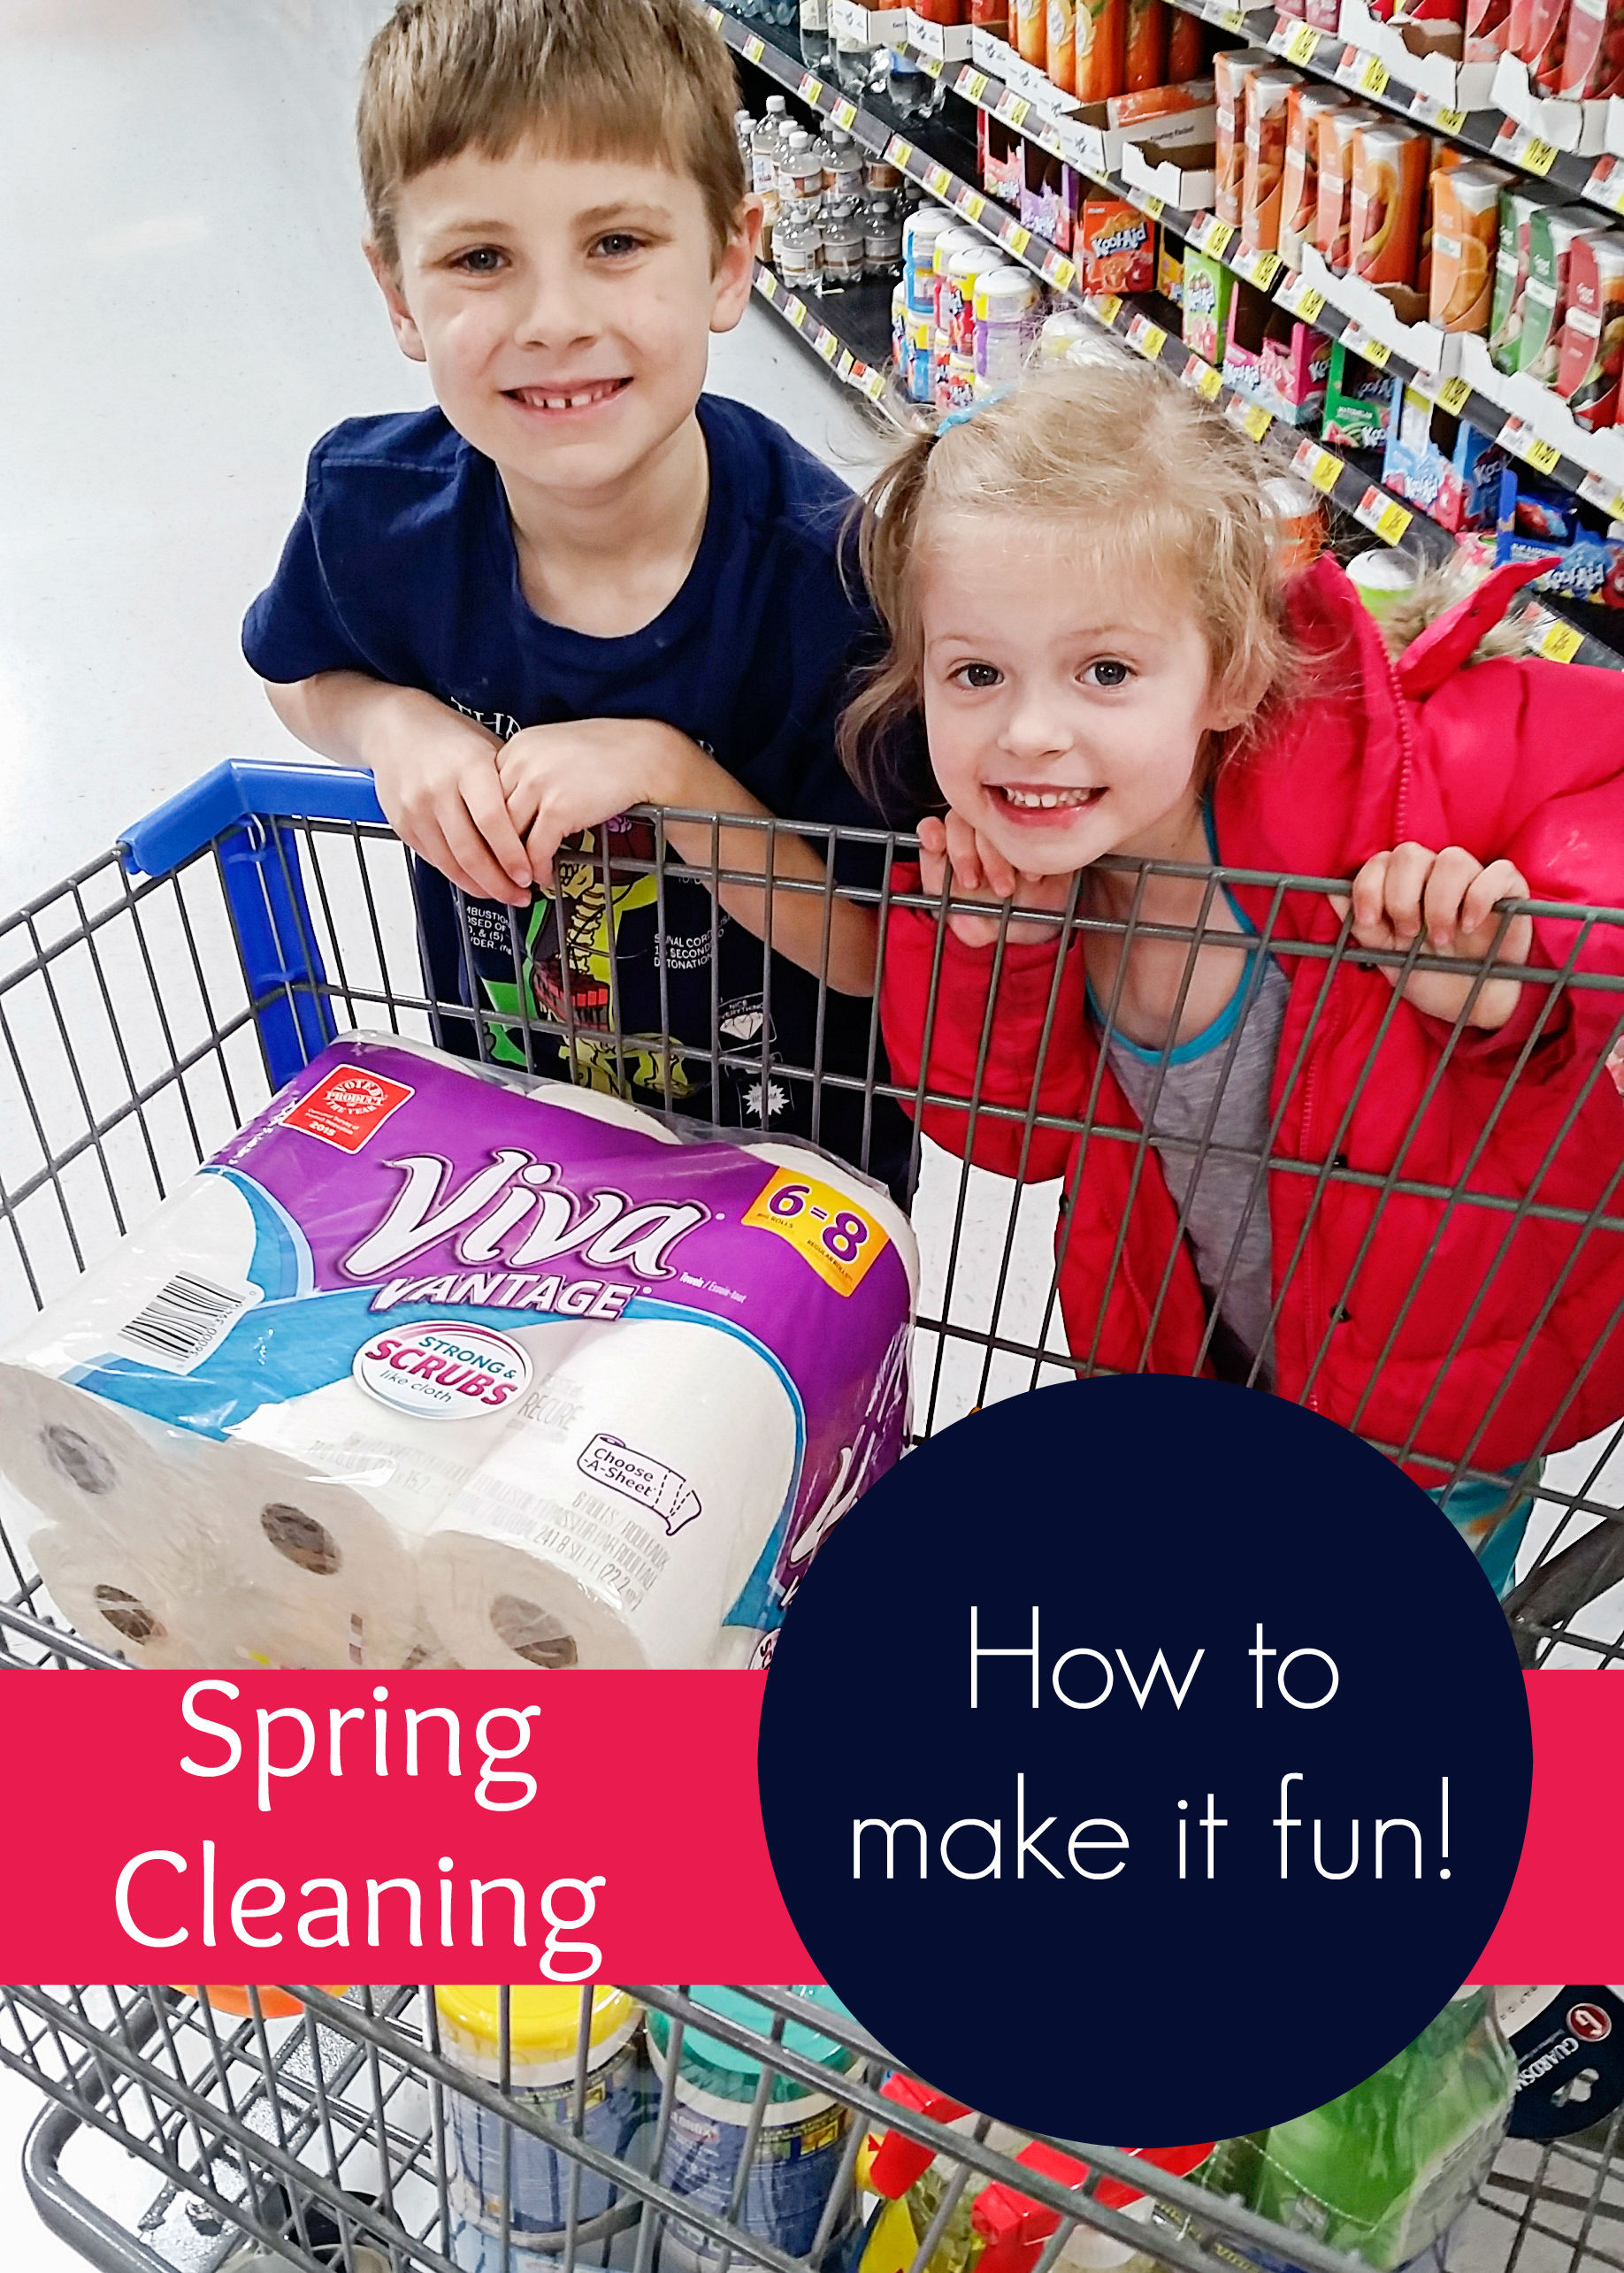 How I Make Spring Cleaning Fun for the Kids!